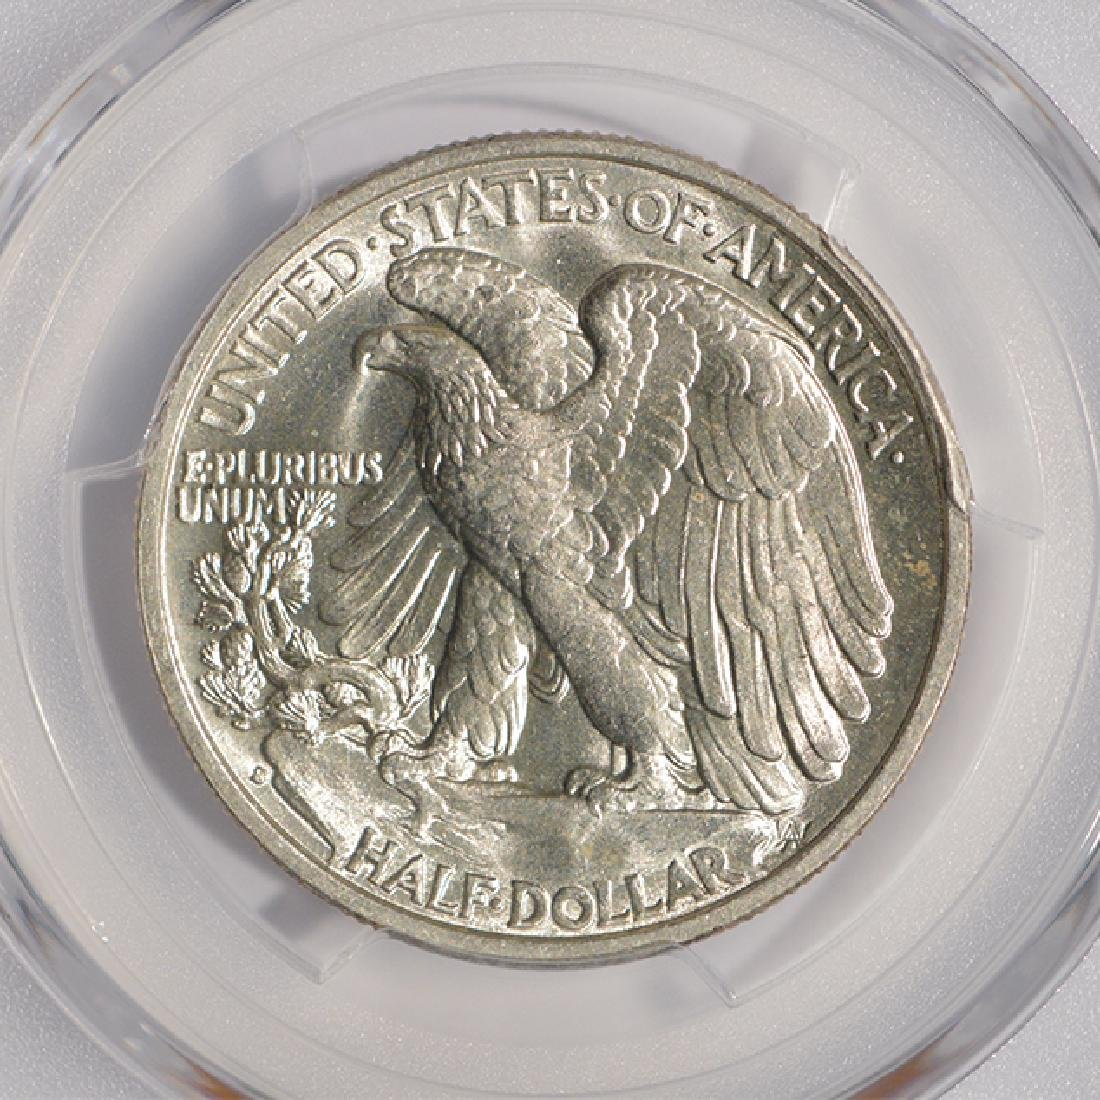 1941-S Walking Liberty Half Dollar Coin PCGS MS64 - 4